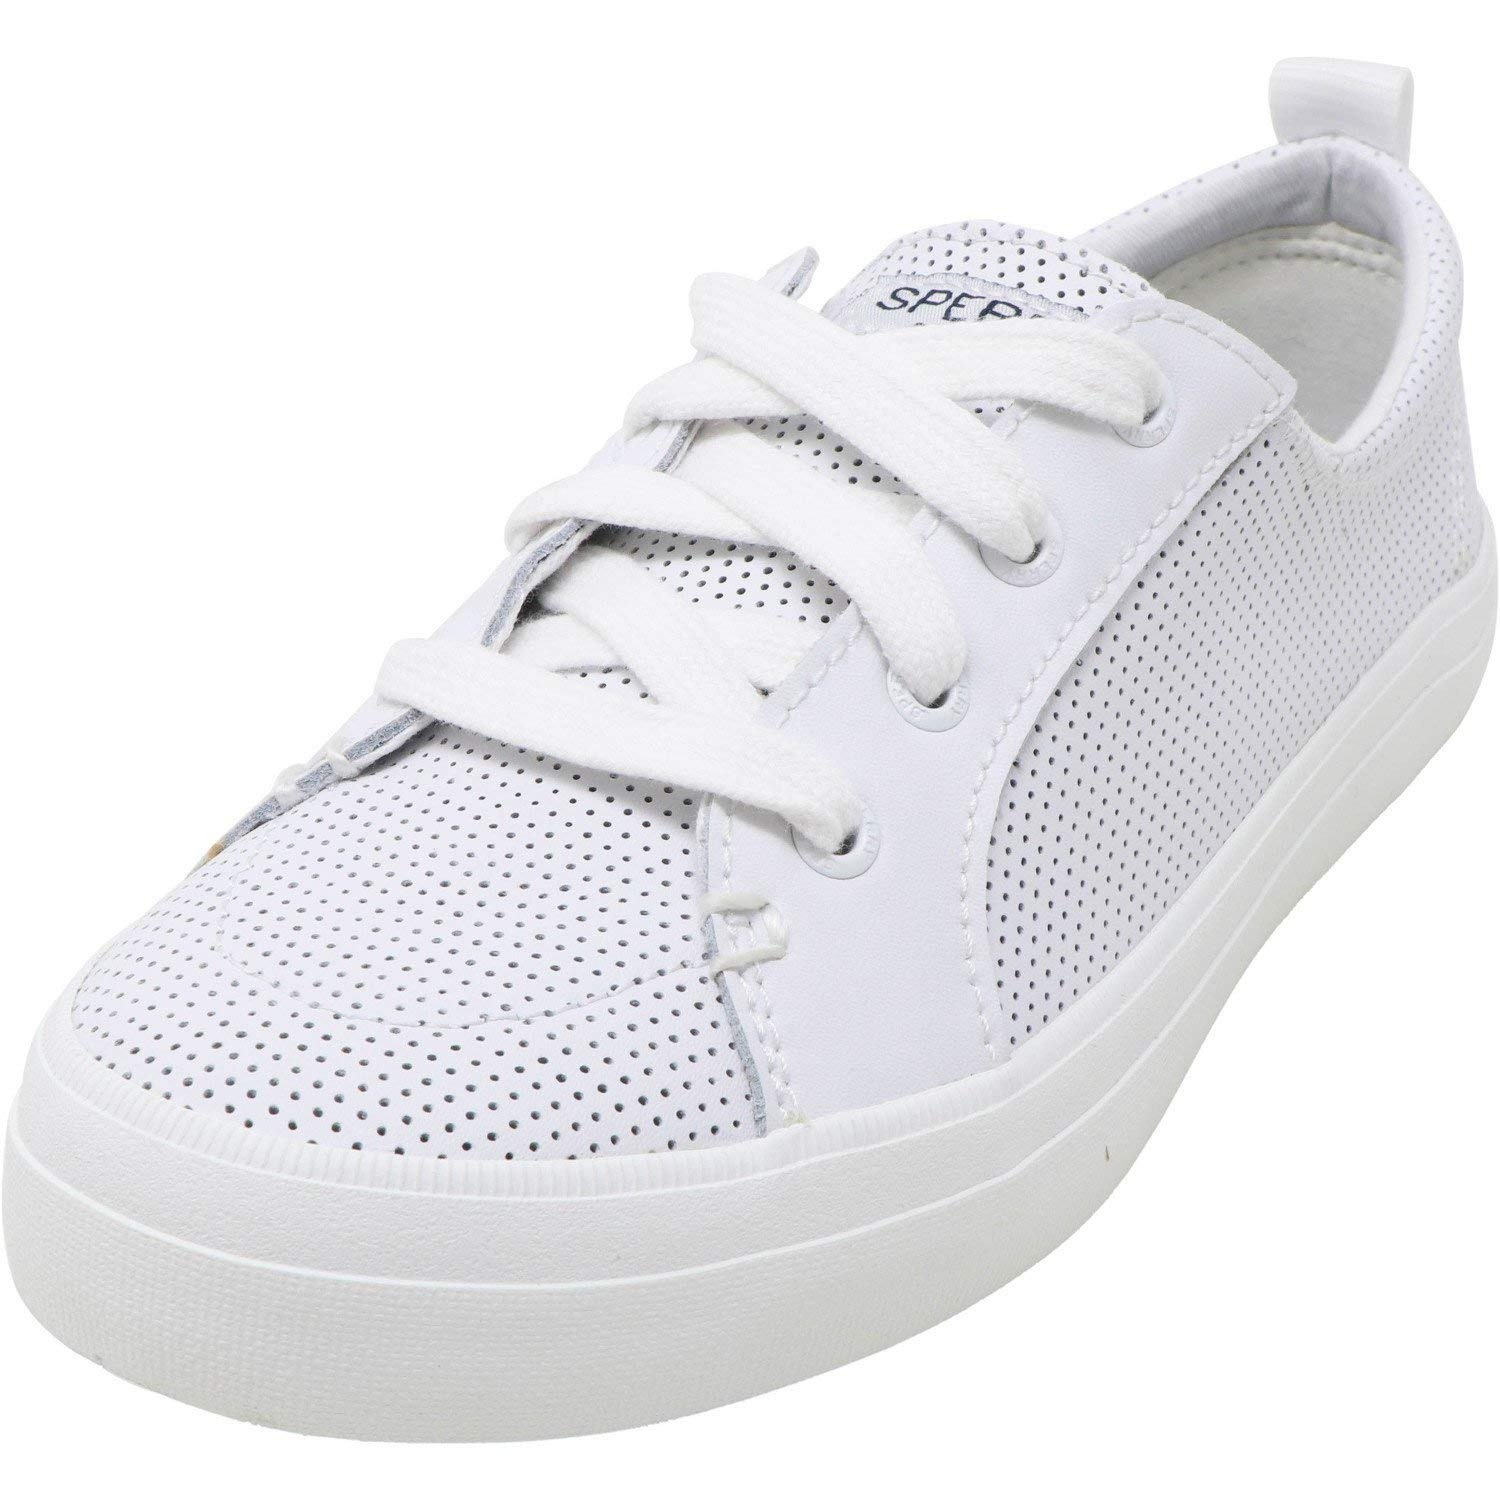 Buy Sperry Top-Sider Crest Vibe Mini